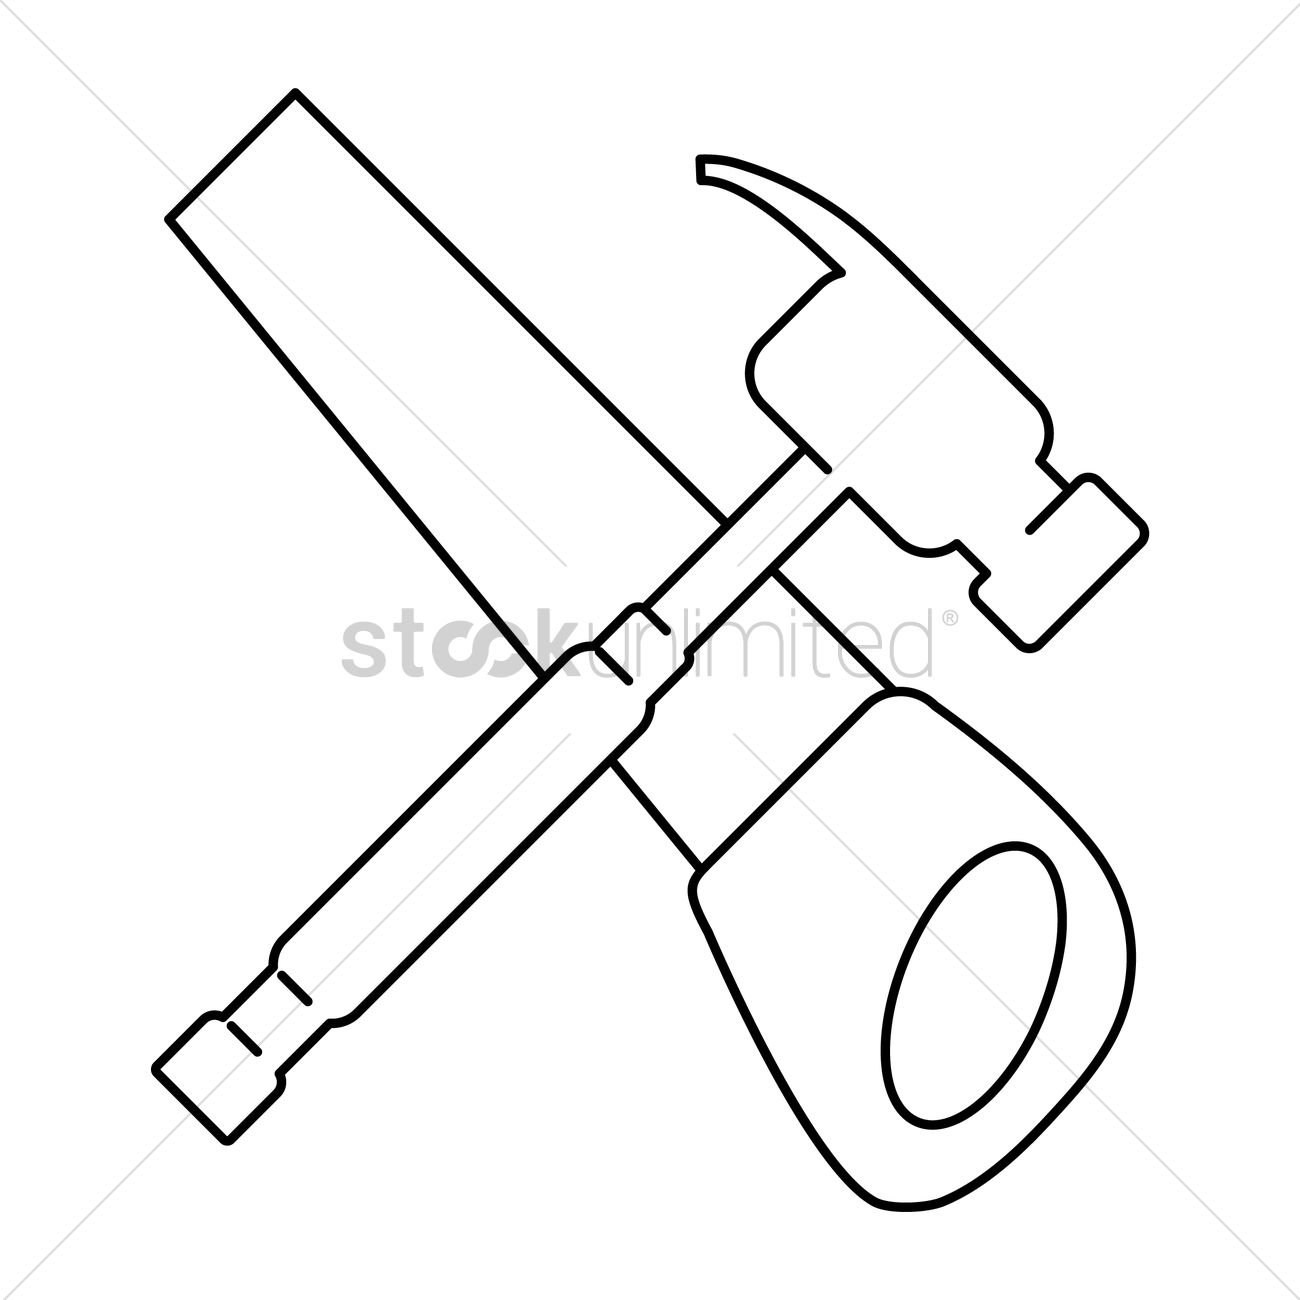 hight resolution of saw clipart crossed svg library download